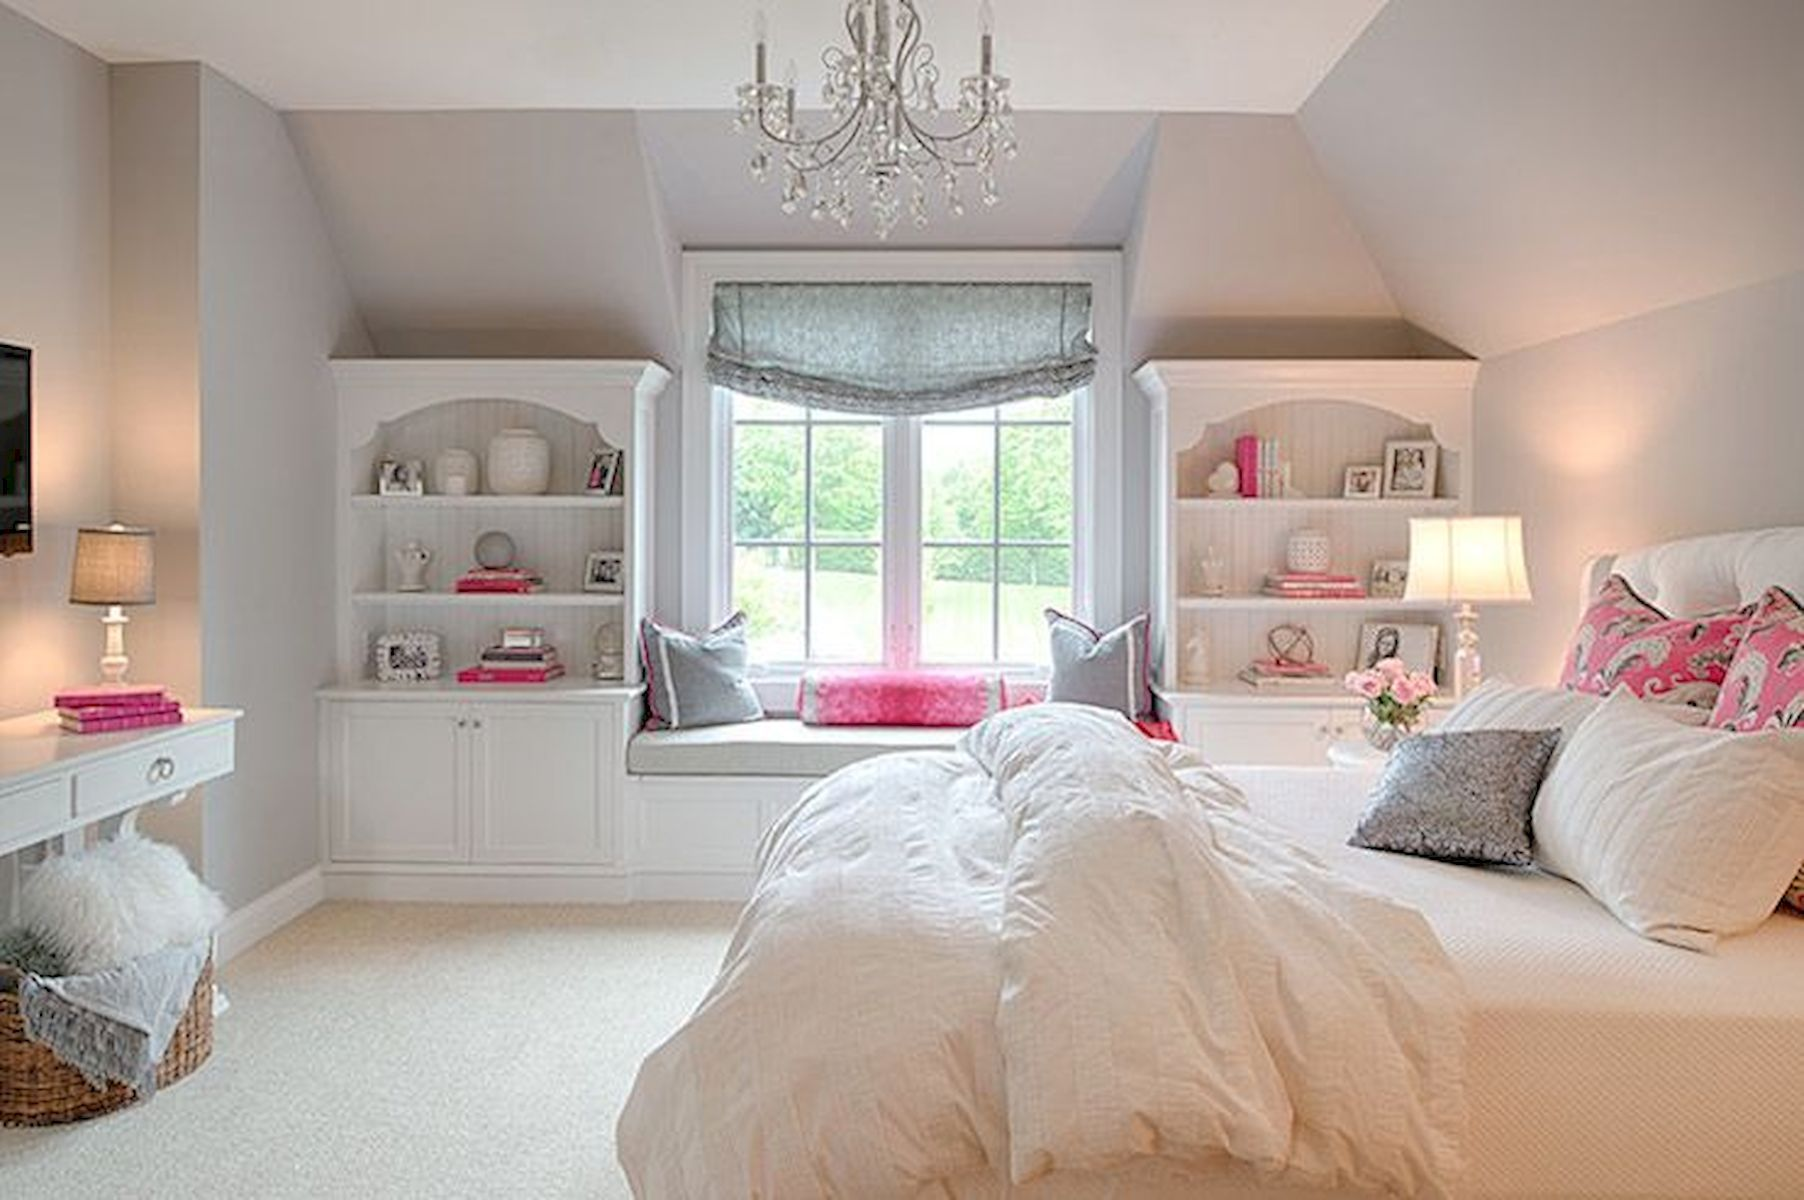 The Idea of Window Seat For Your Bedroom